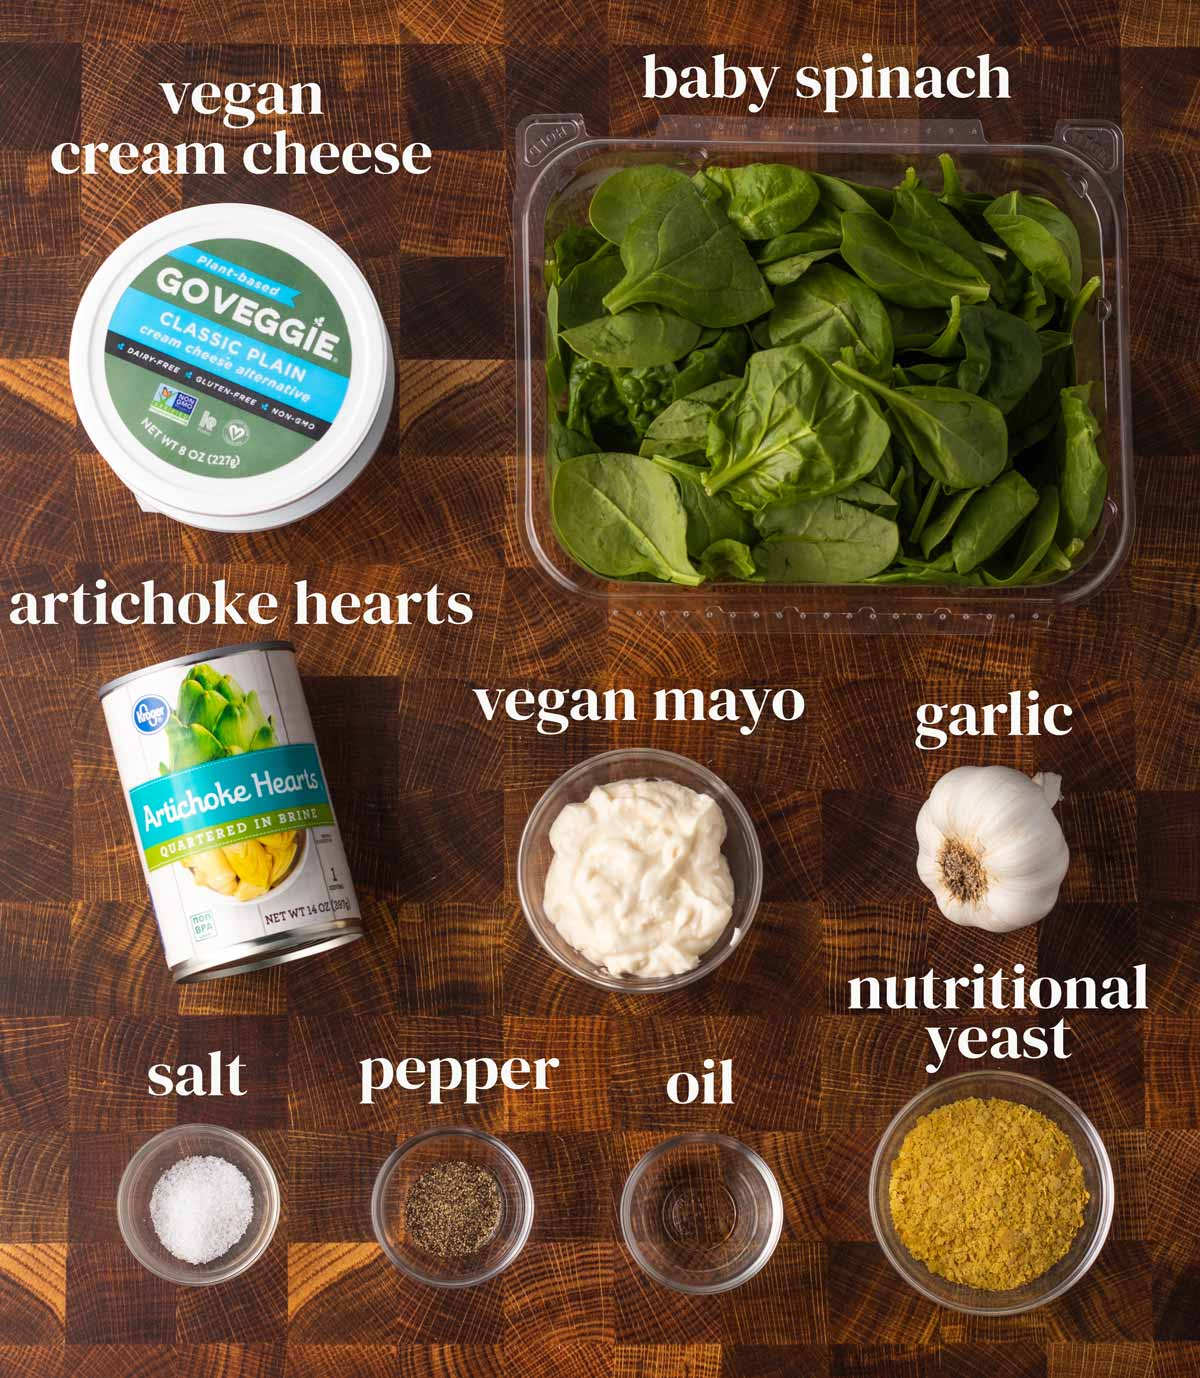 Ingredients laid out on a surface (dairy-free cream cheese, spinach, artichoke hearts, mayo, garlic, and seasonings.)